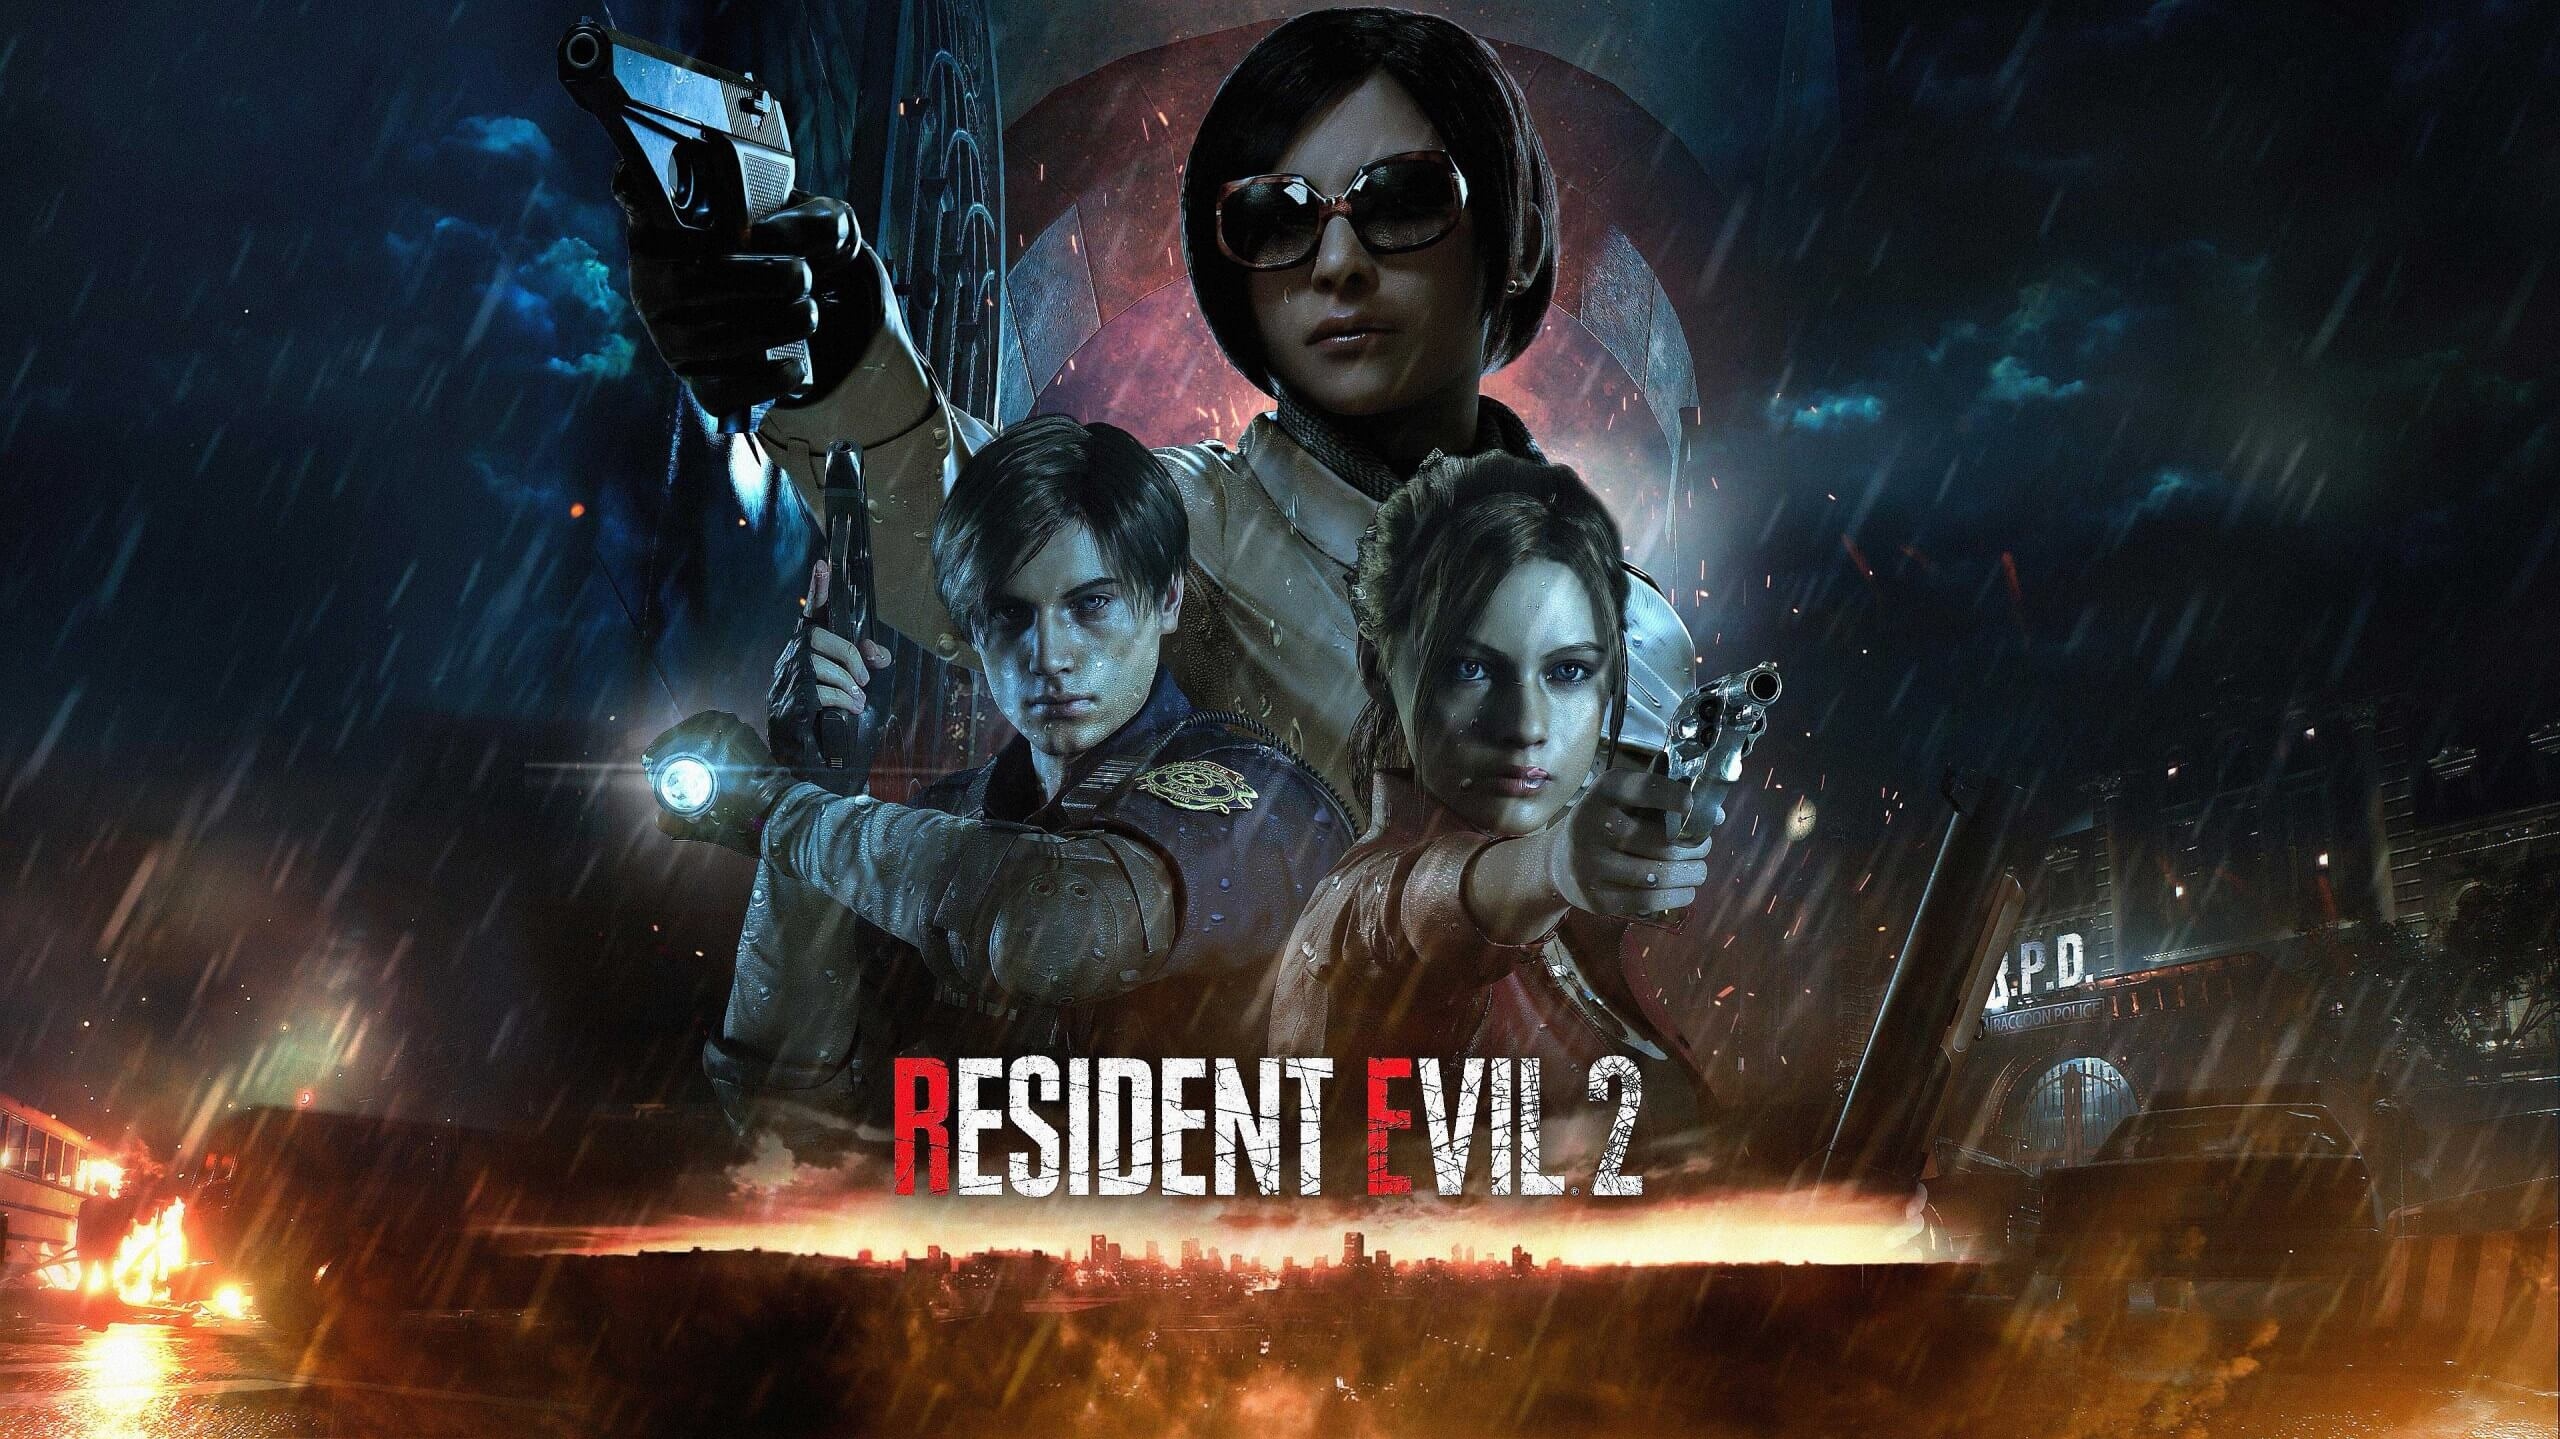 Resident Evil 2 review round-up: Capcom's classic lives up